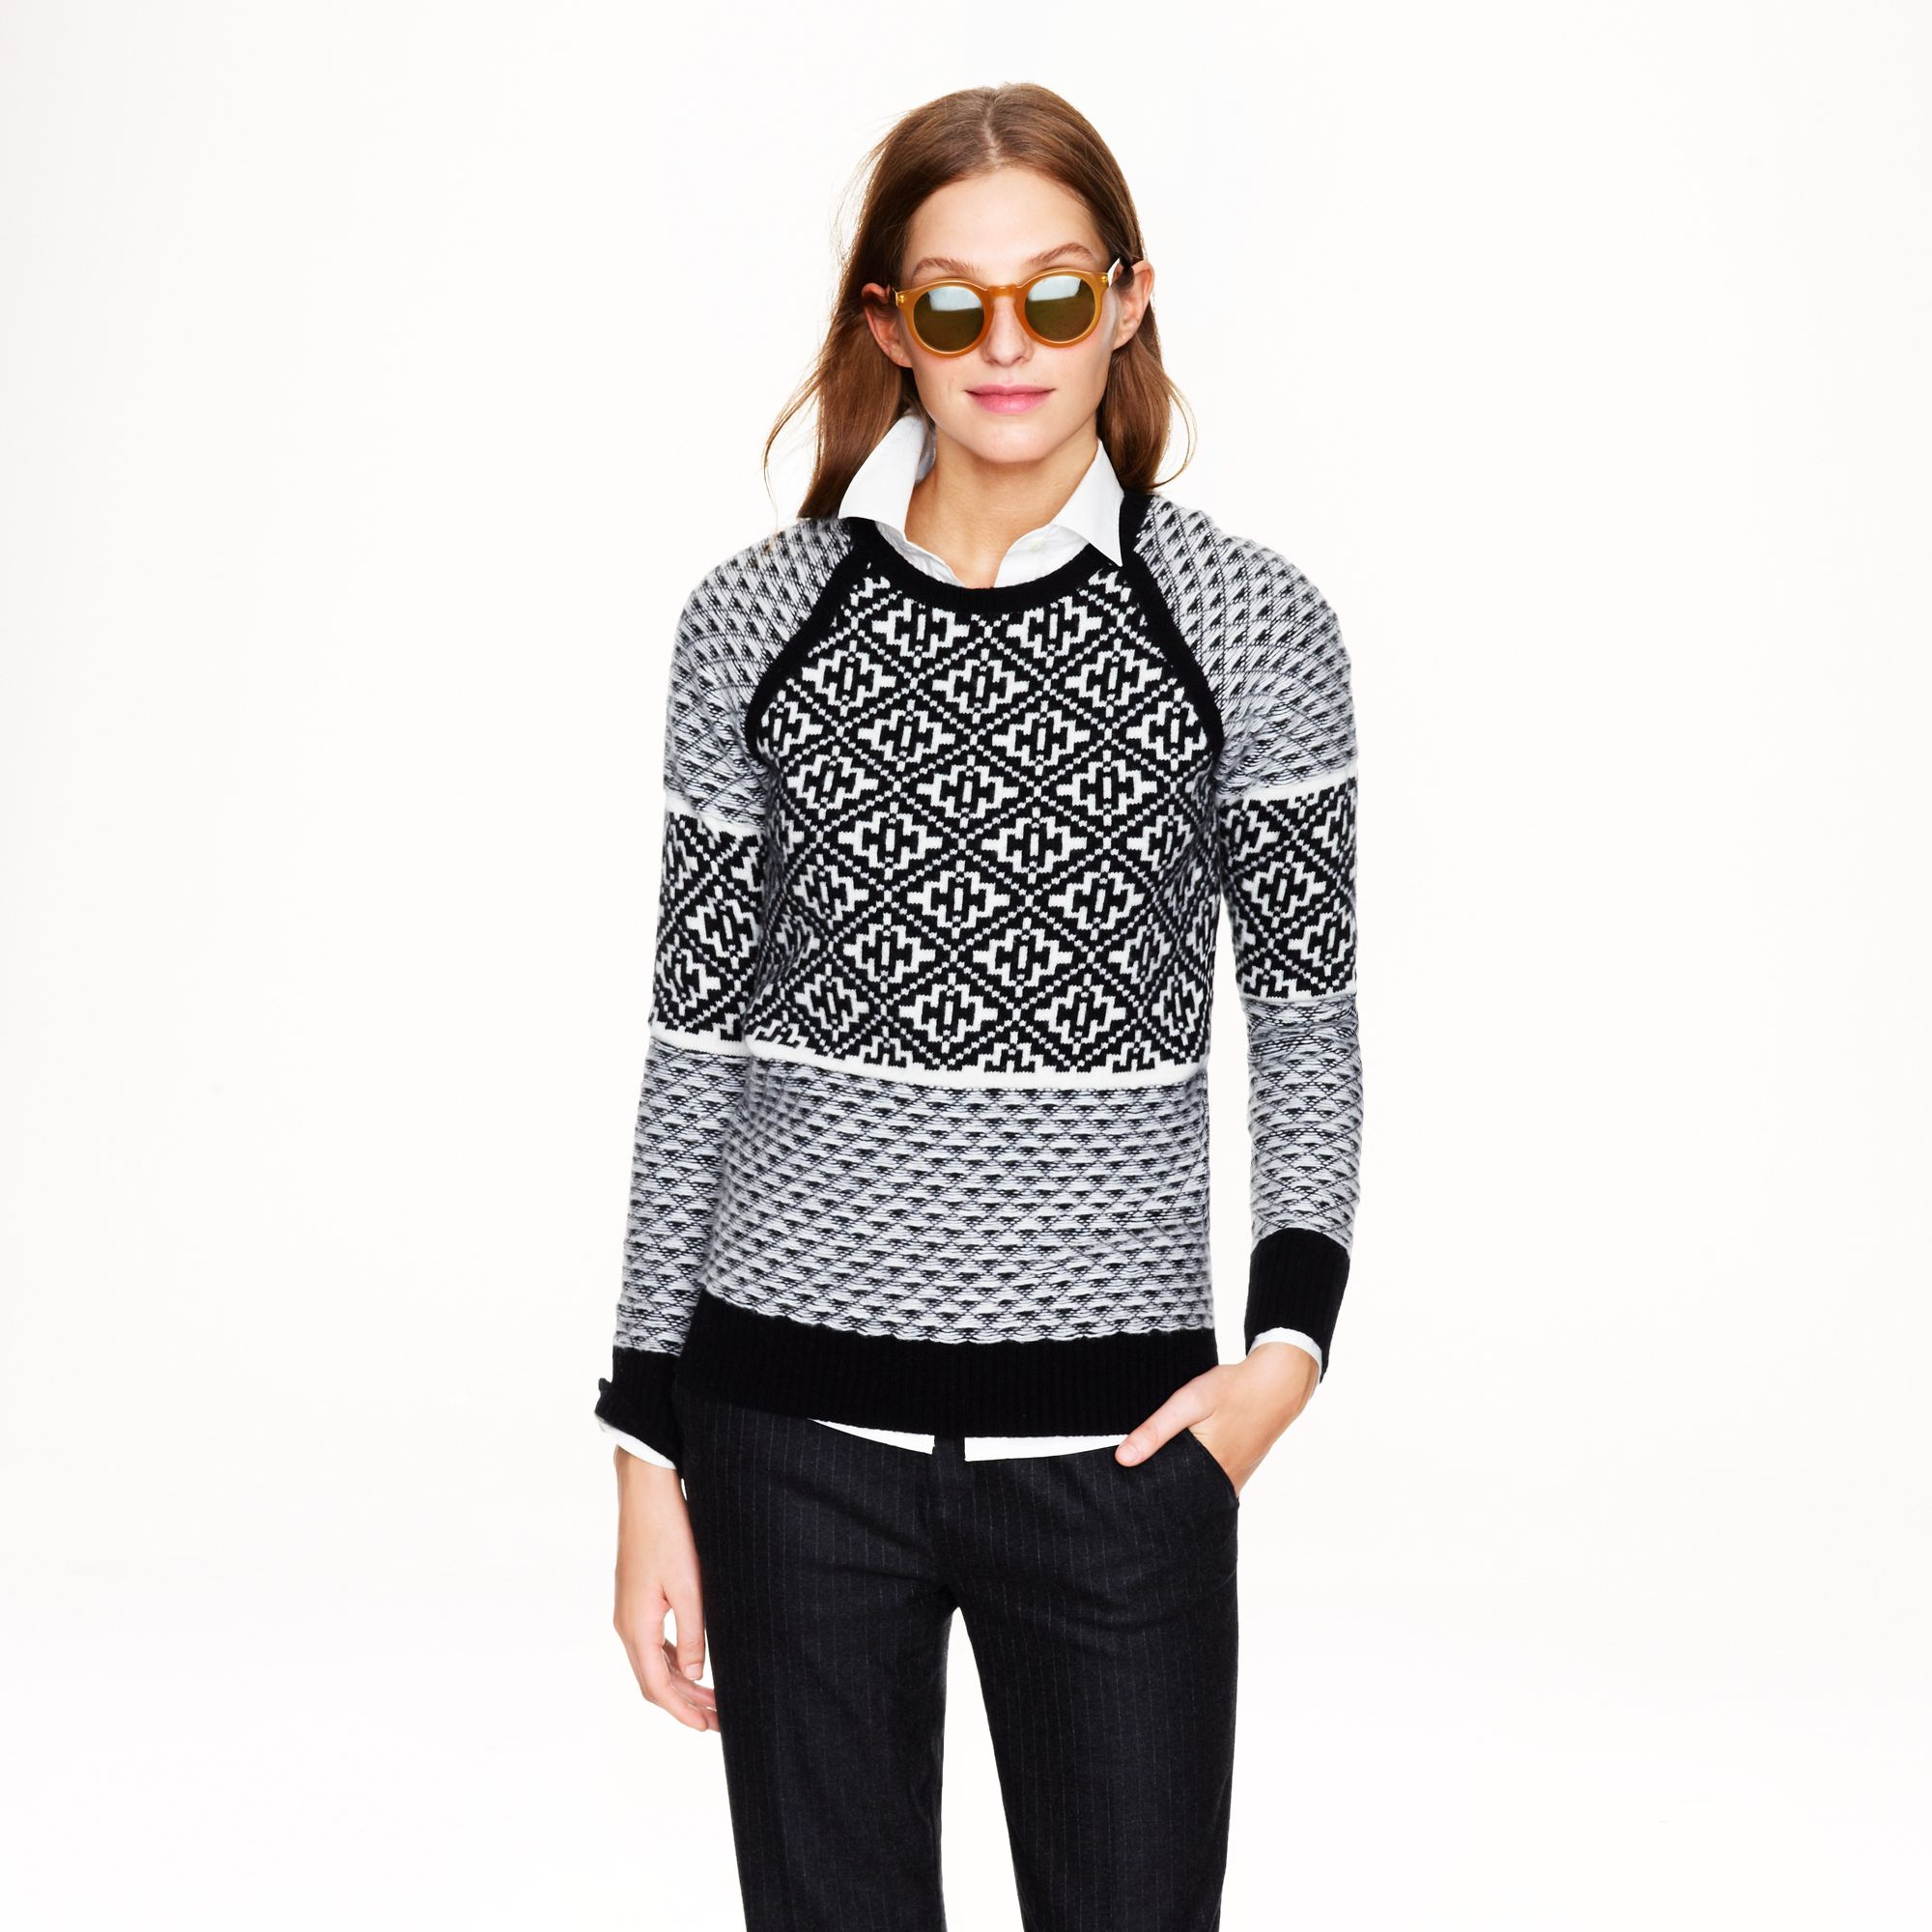 J.crew Handkerchief Fair Isle Sweater in White | Lyst